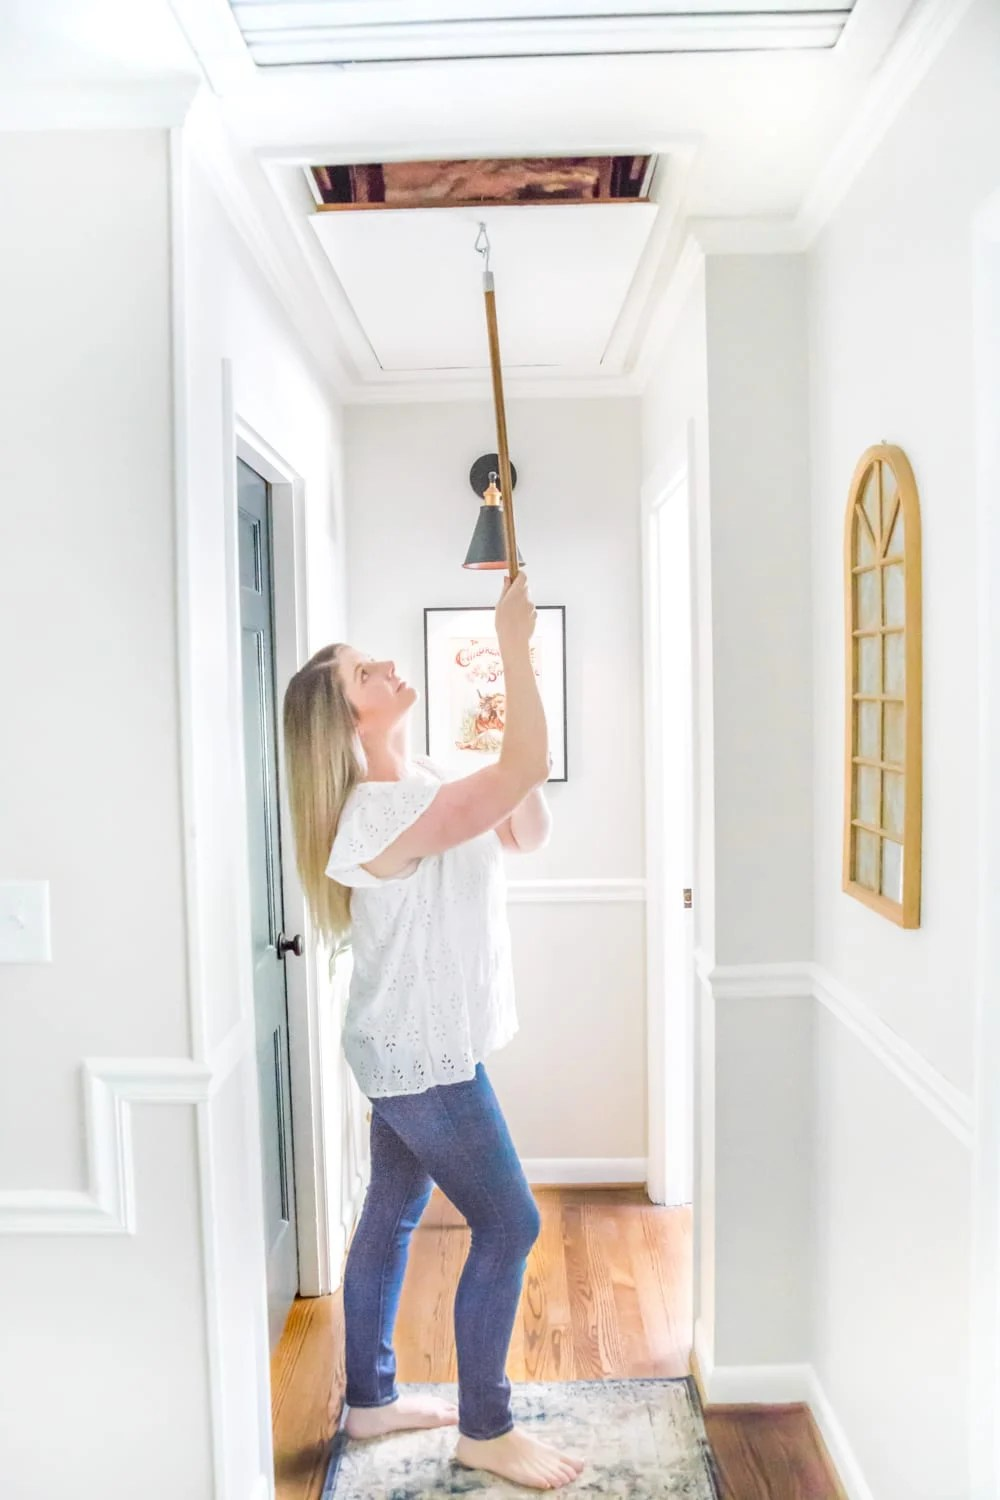 How to Replace an Attic Door String with a Hook | blesserhouse.com - A quick tip for improving the look of a hanging cord on an attic door.